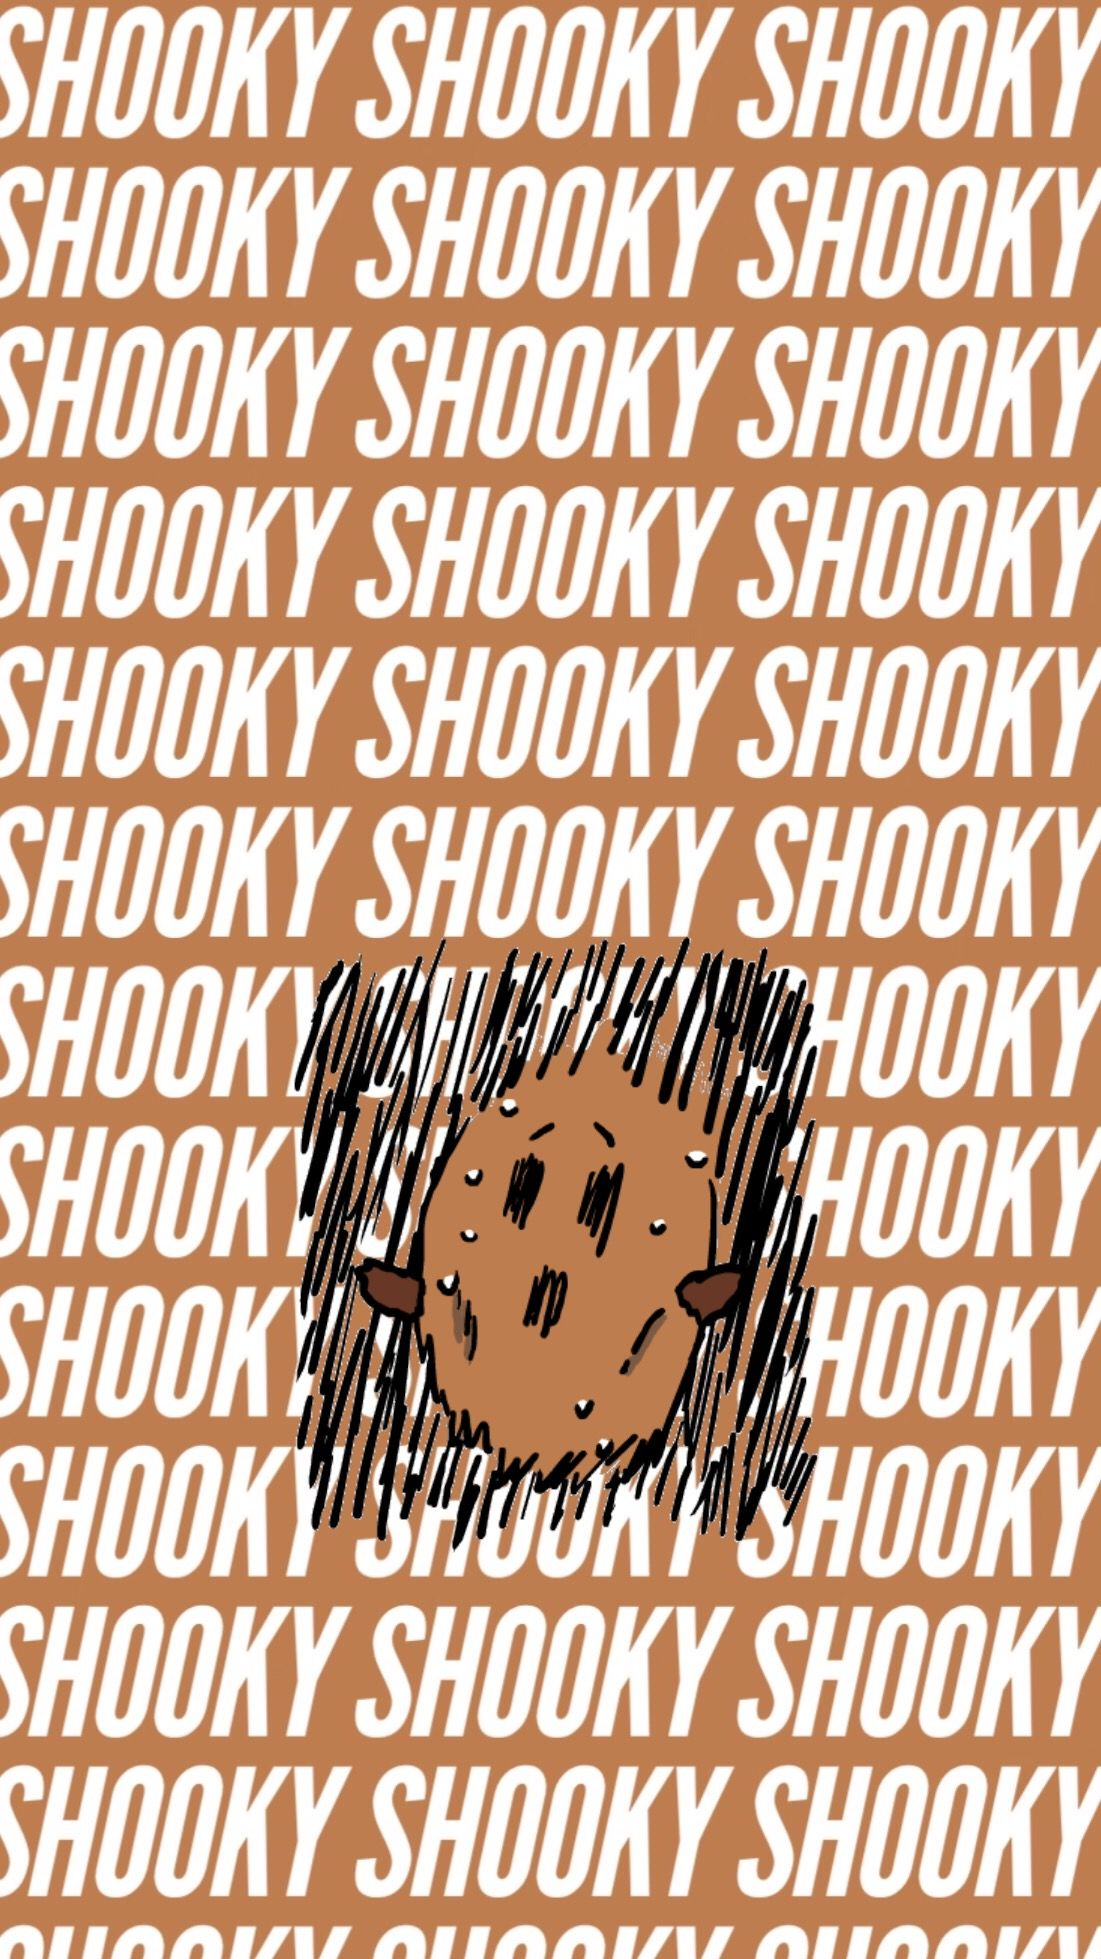 BTS SHOOKY WALLPAPER MINYOONGI SUGA BT21 | BTS WALLPAPER ...